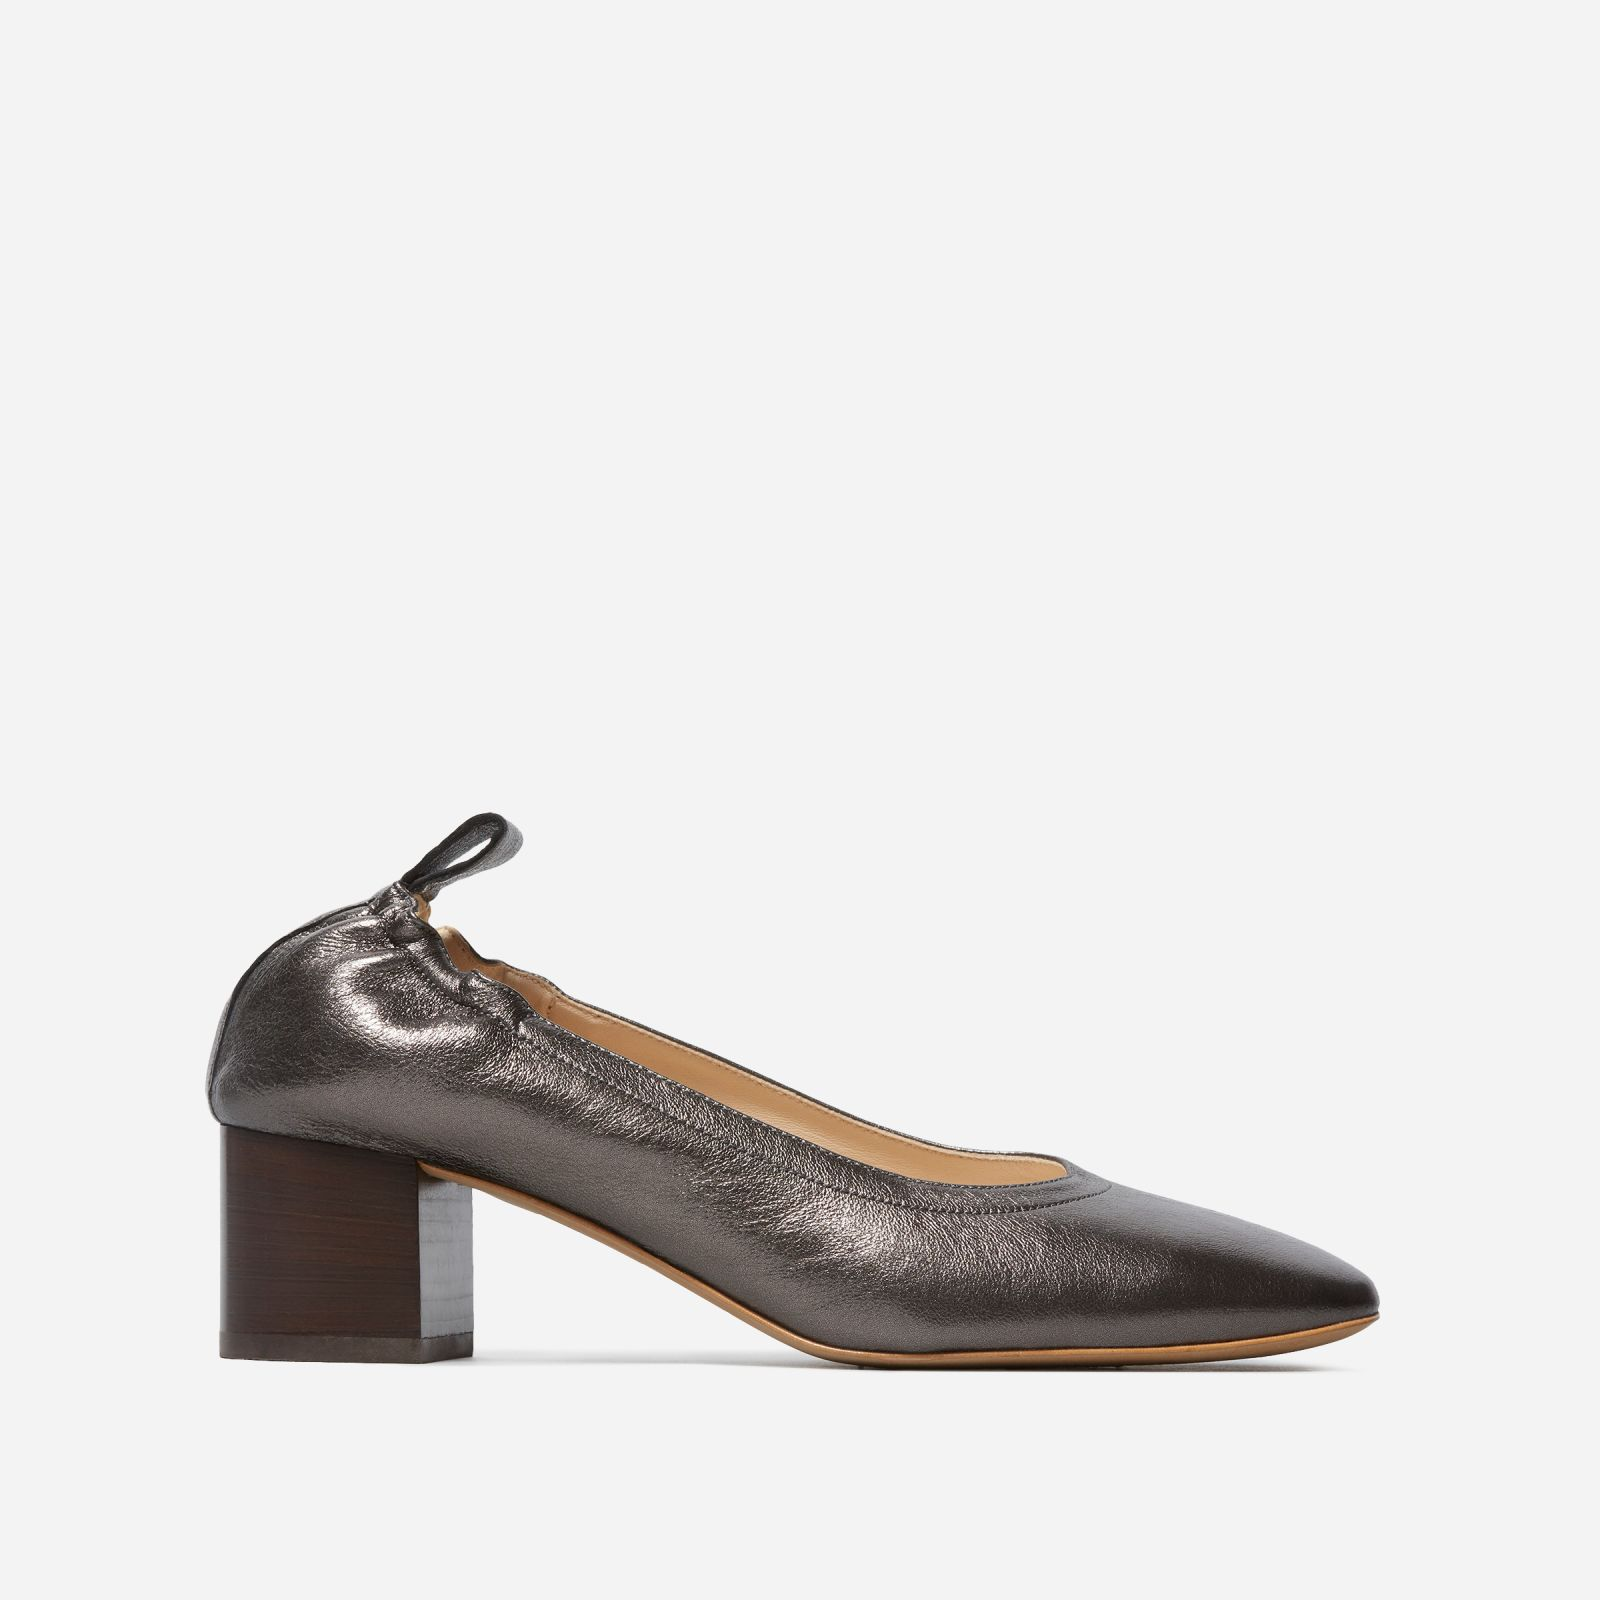 women's pump heel by everlane in iron stacked, size 11